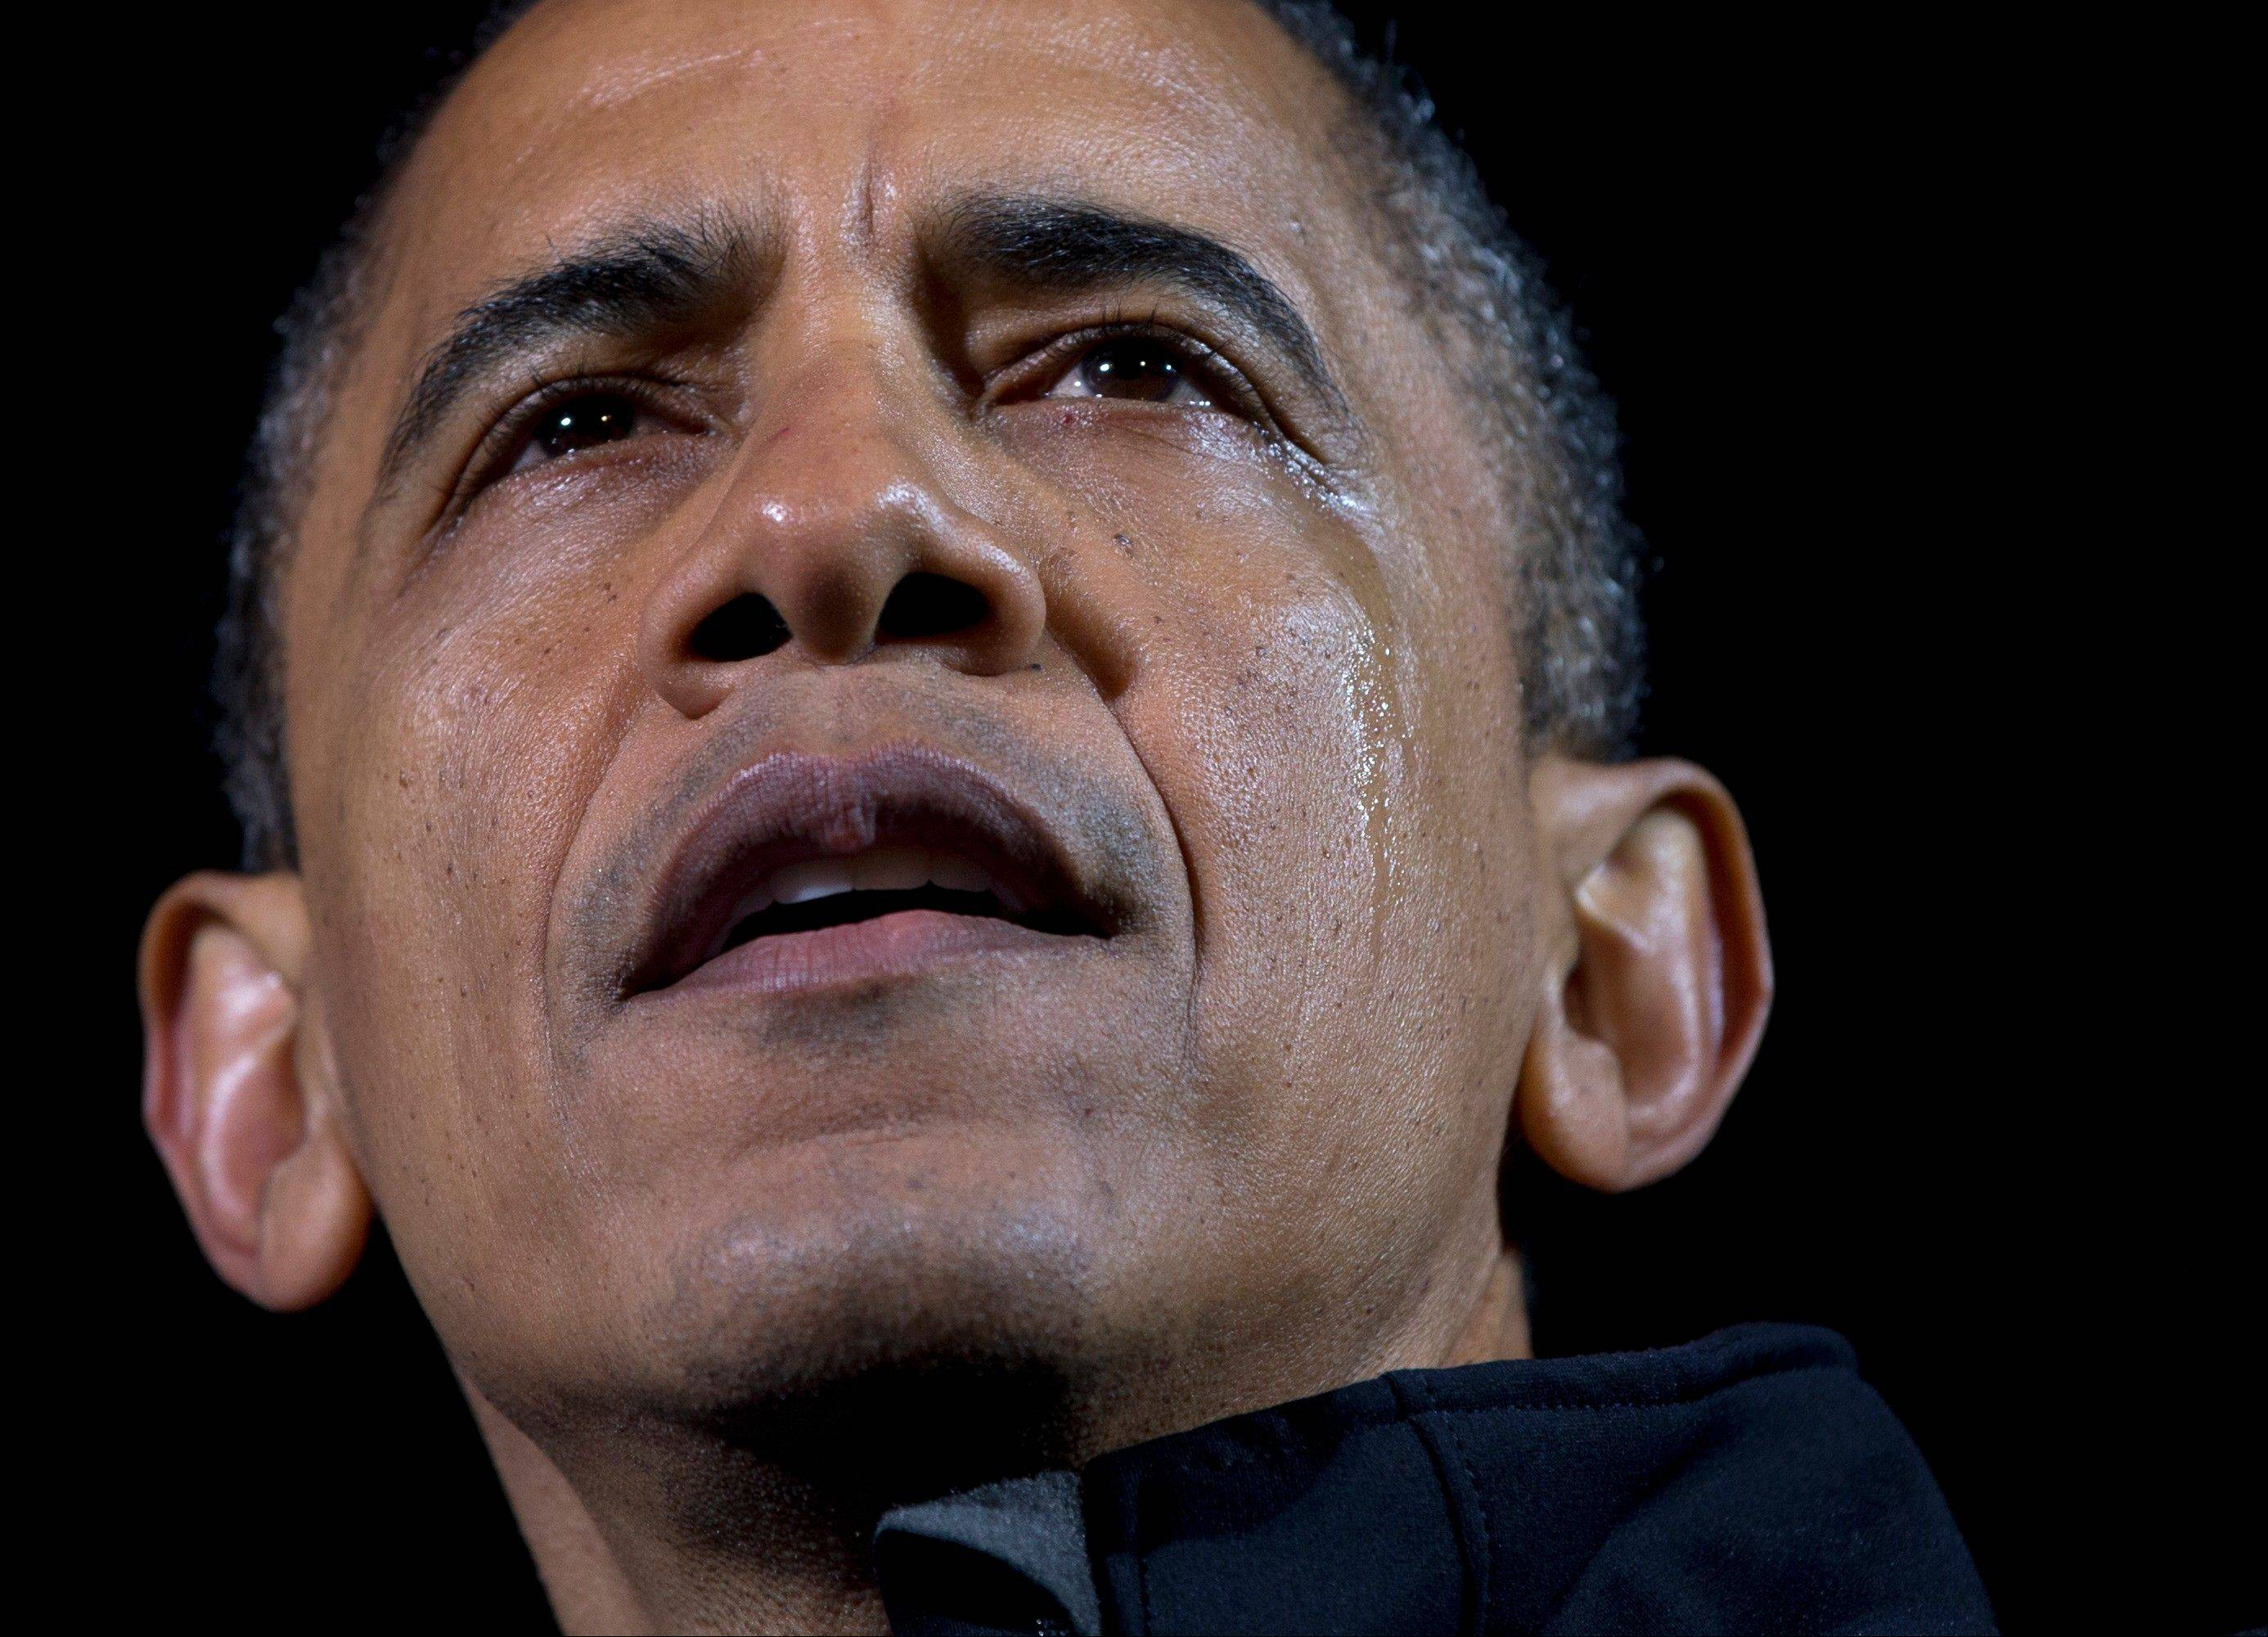 Tears run down the cheek of President Barack Obama as he speaks at his final campaign stop on the evening before the 2012 election, in the downtown Des Moines, Iowa. Barack Obama isn't the only world leader unashamed or unable to avoid being seen crying in public.